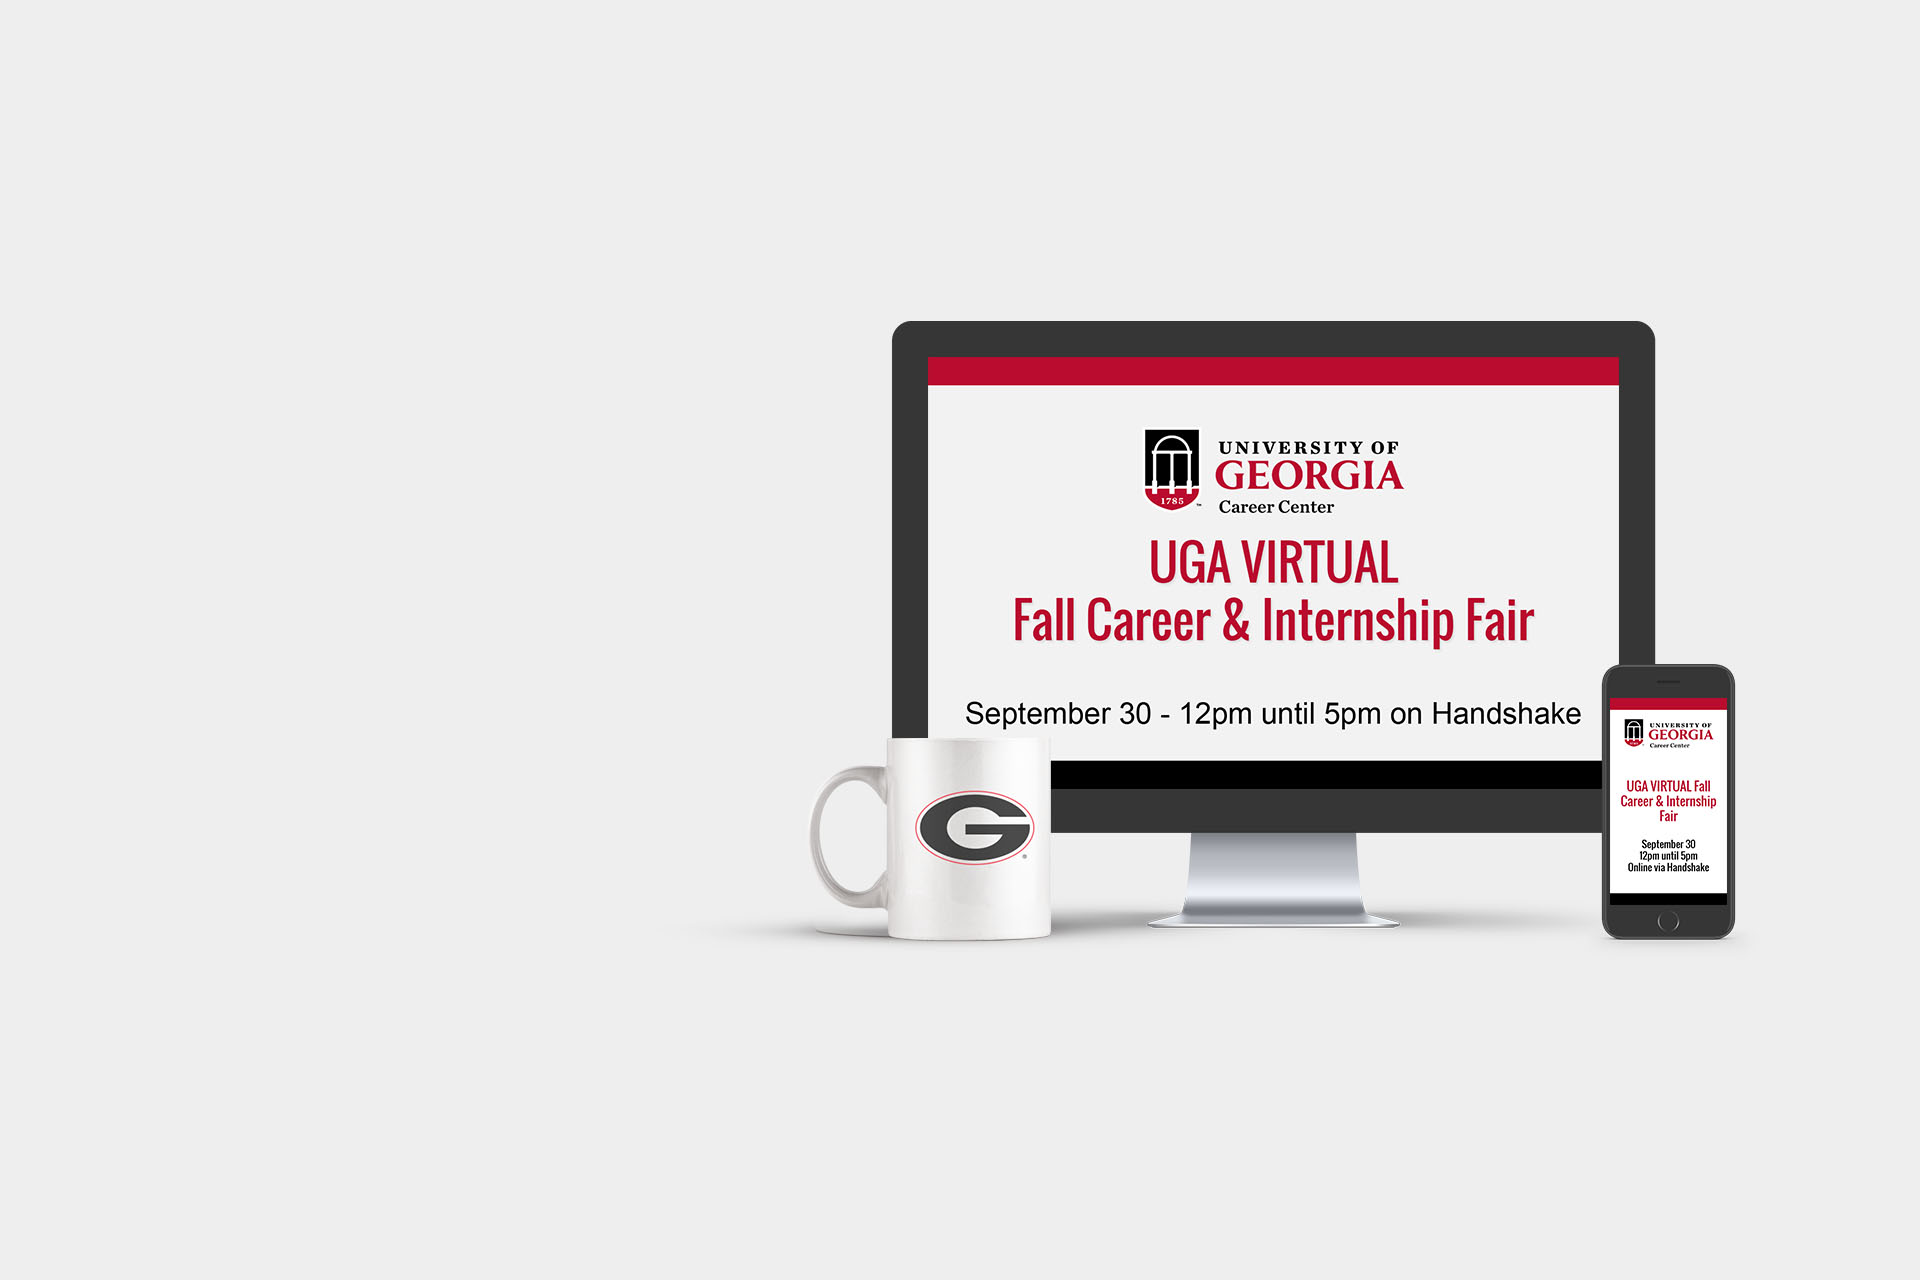 UGA VIRTUAL Fall Career & Internship Fair - September 30 from 12pm until 5pm online via Handshake